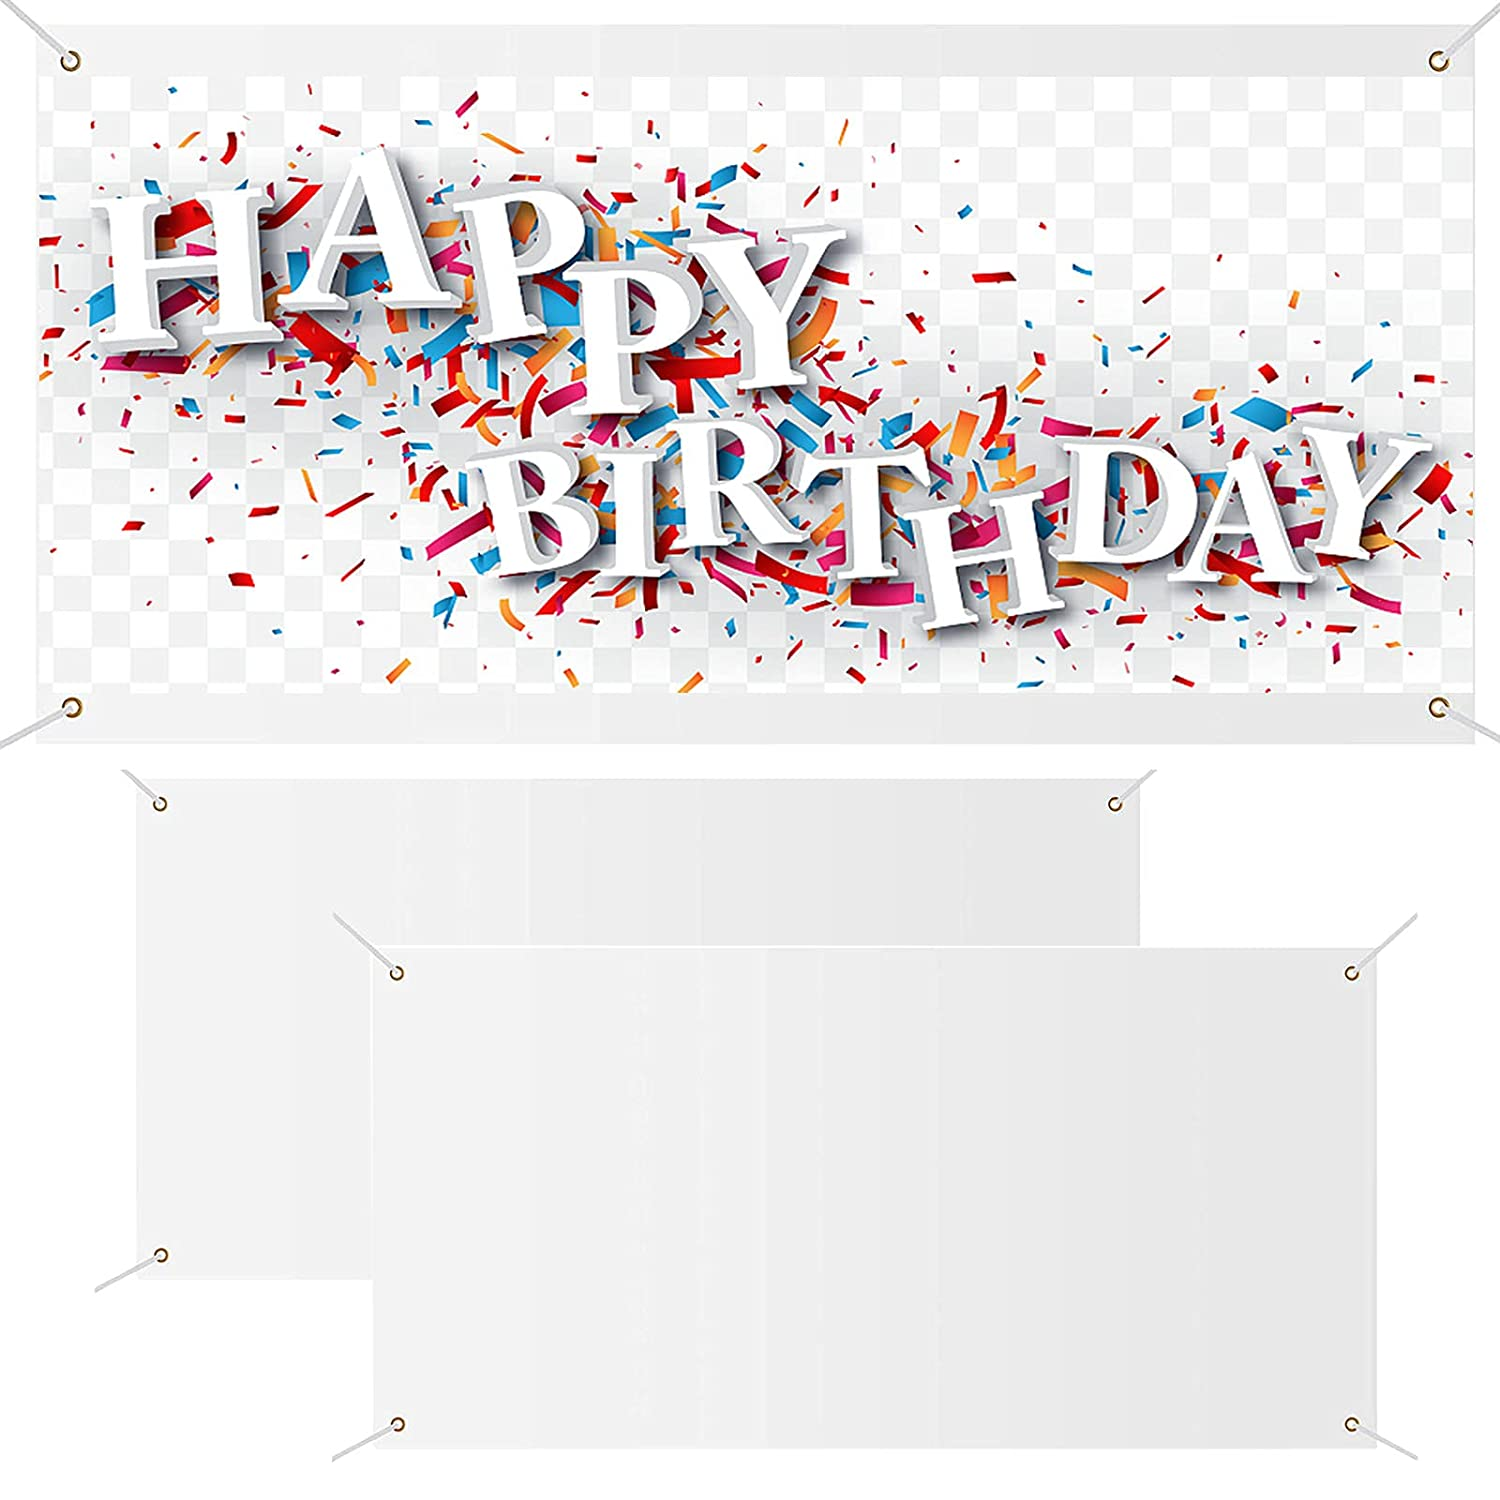 2Pcs Large Banners and Signs Blank Banner, White Polyester Custom Banner Flag With Hanging Rope, Make Your Own Personalized Party Diy Banners and Signs for Indoor Wall Outdoor (White, 2 x 6 Feet)